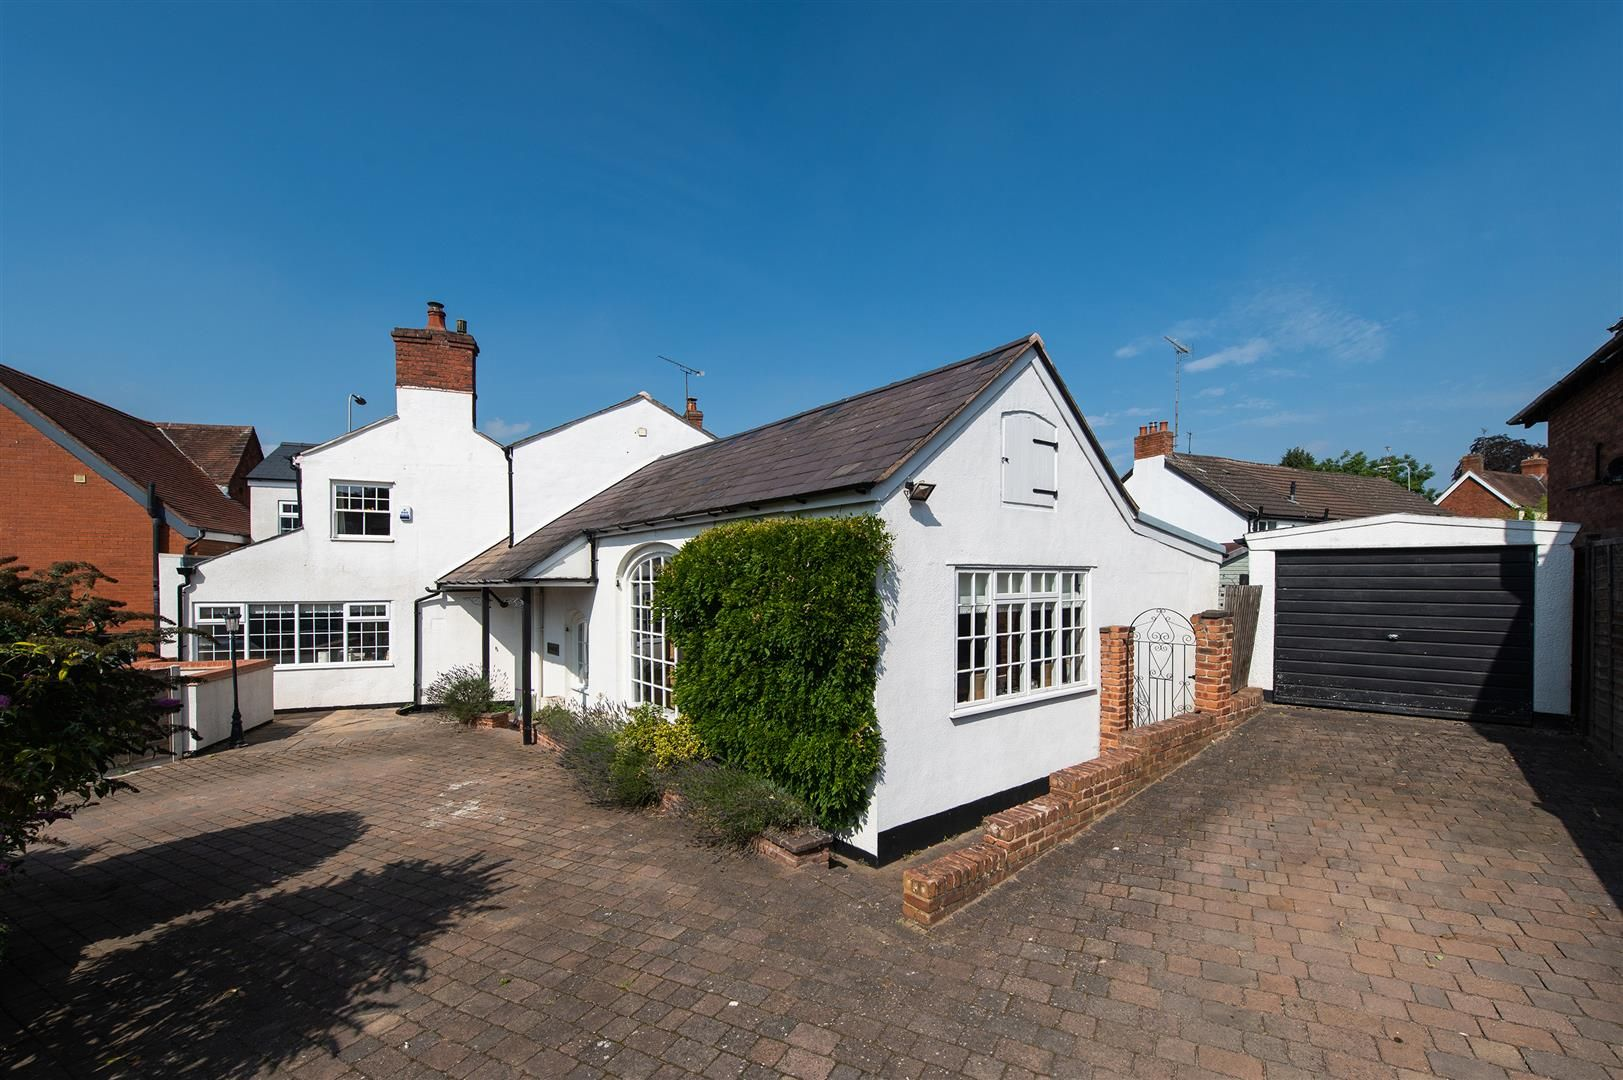 4 bed detached for sale in Blakedown  - Property Image 5